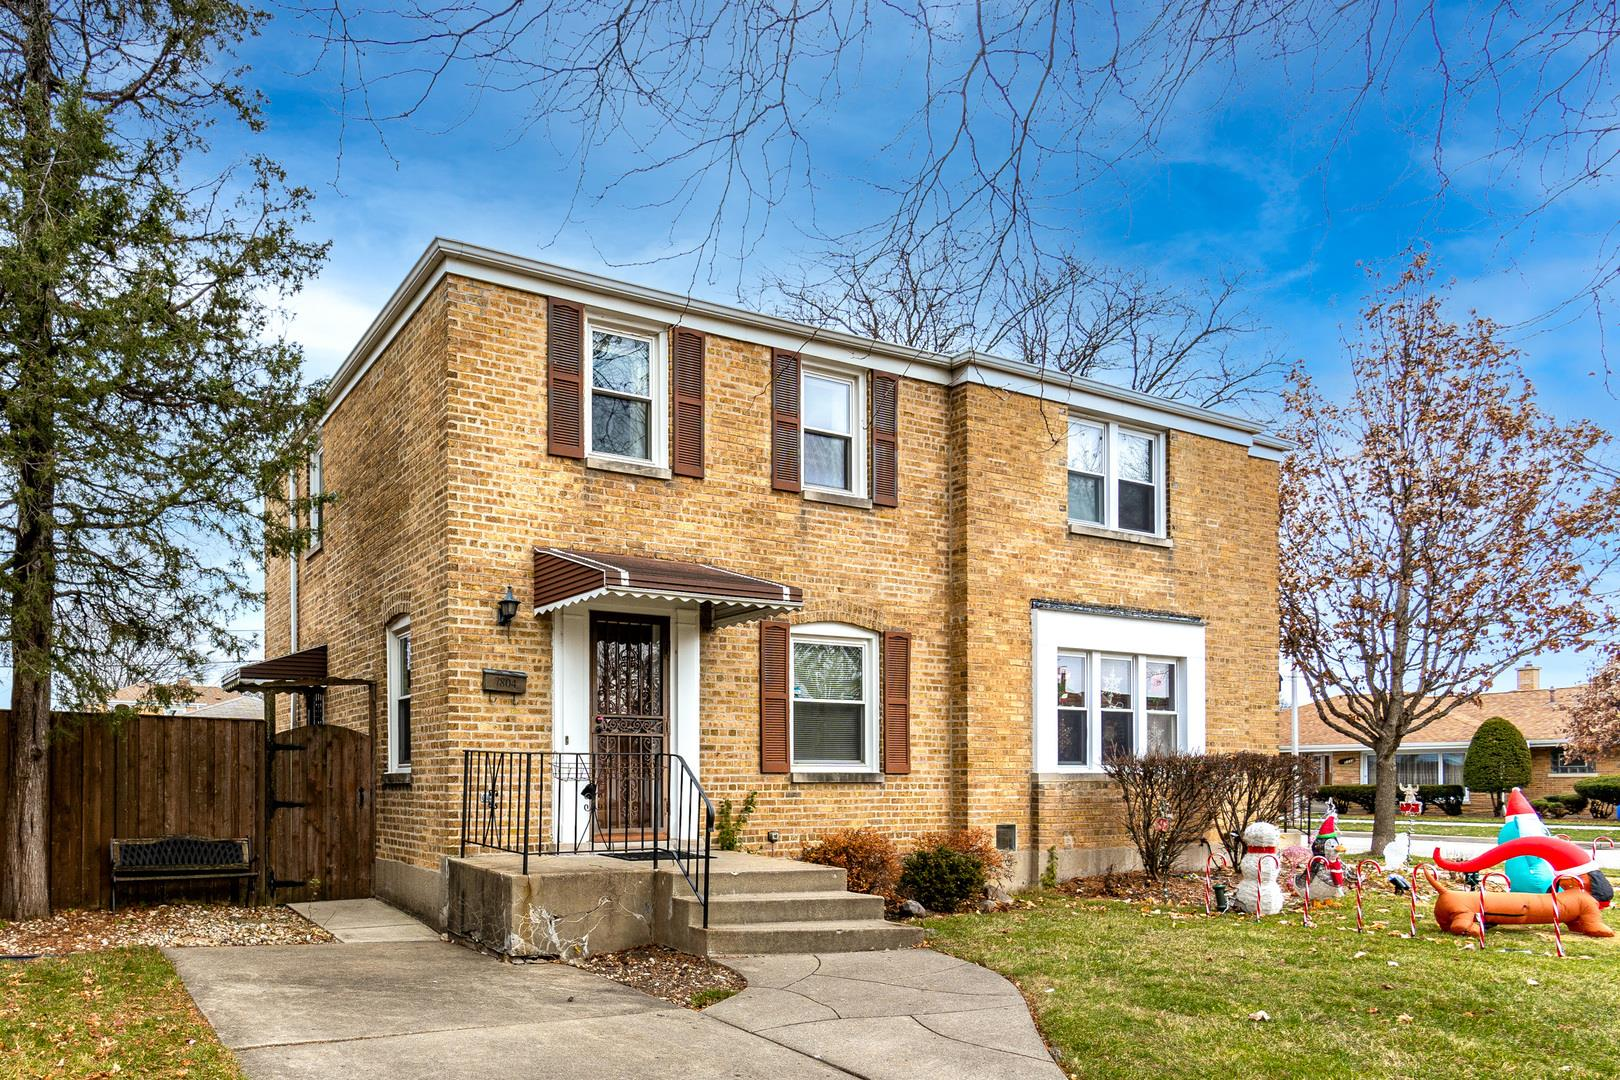 7804 W Summerdale Avenue, Chicago, IL 60656 - #: 10957584